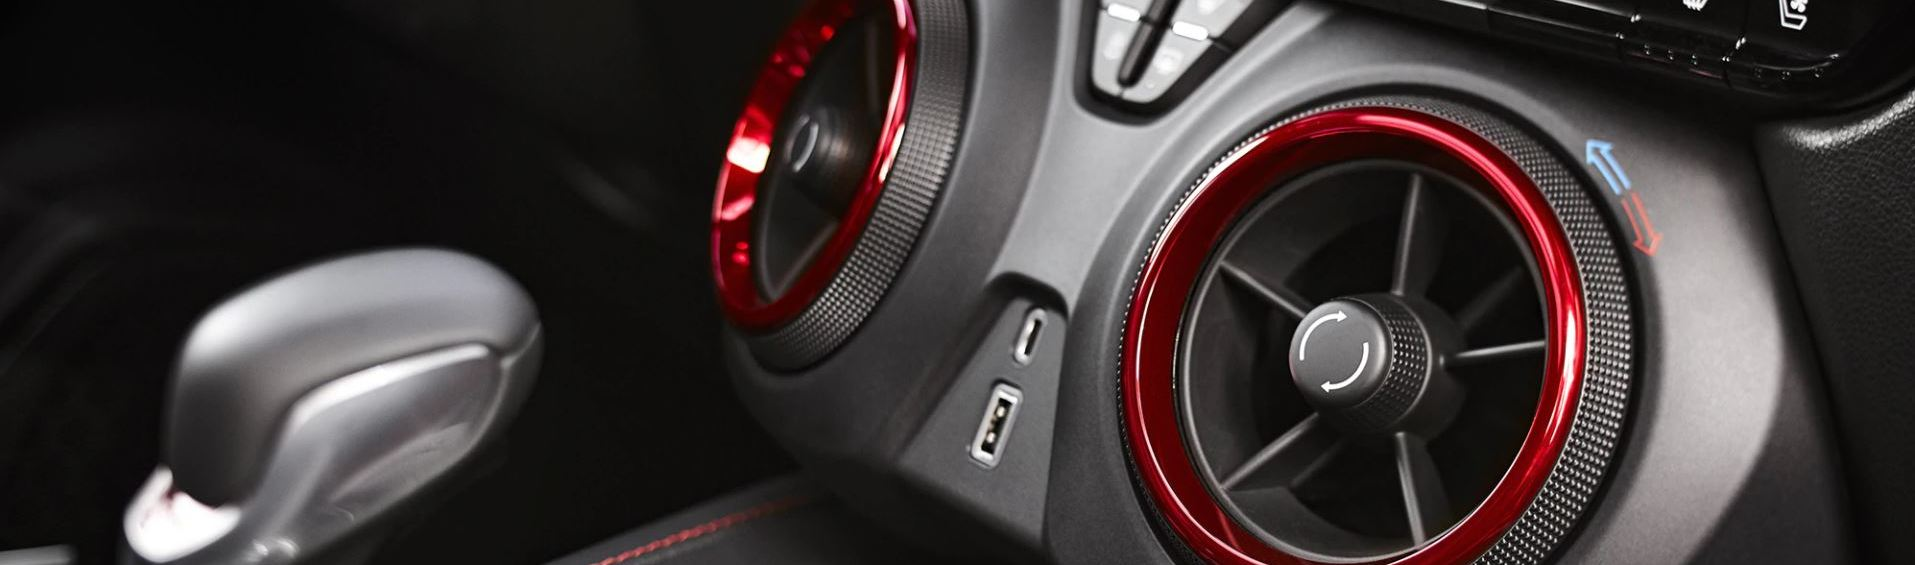 Dual-Zone Climate Control System in the 2020 Chevrolet Blazer